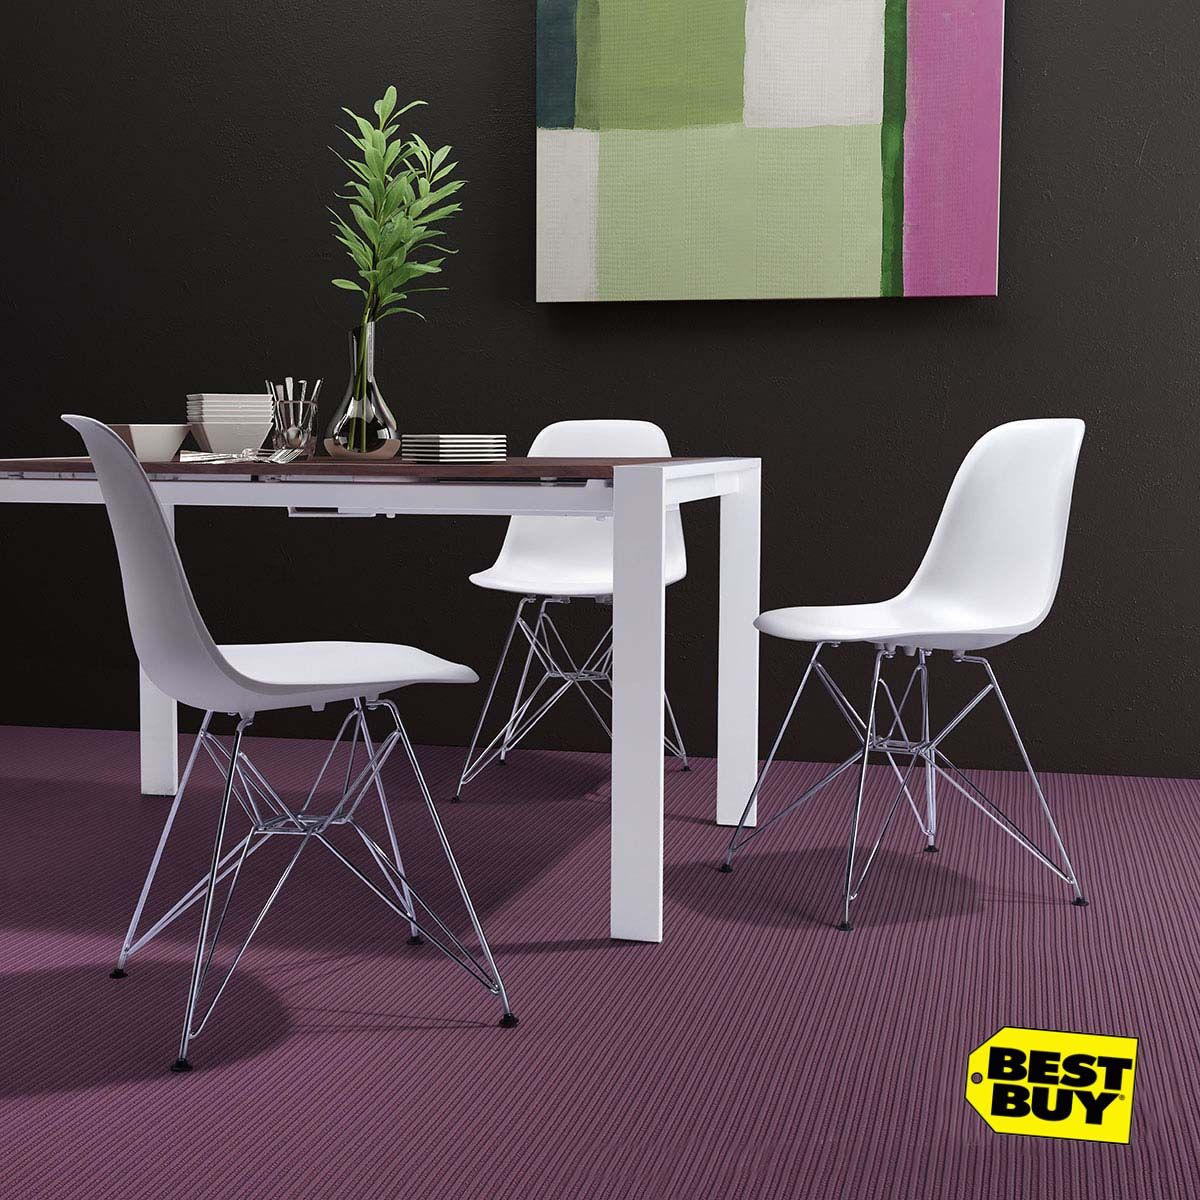 Zip Dining Chair Dining chairs, Small living room design